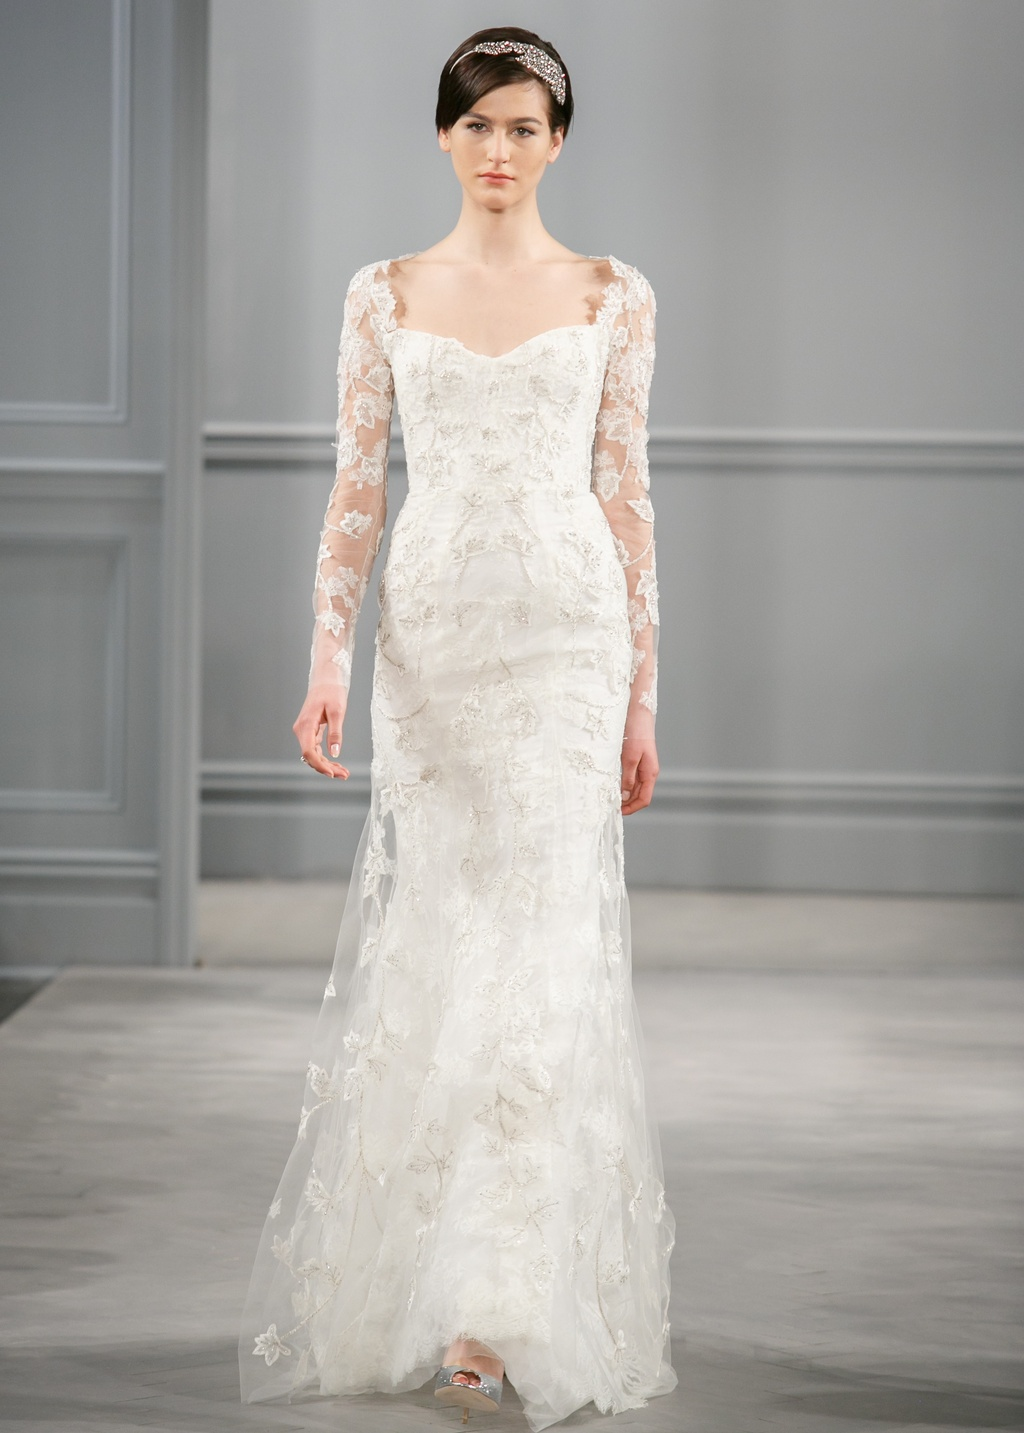 Spring-2014-wedding-dress-monique-lhuillier-bridal-leaticia.full